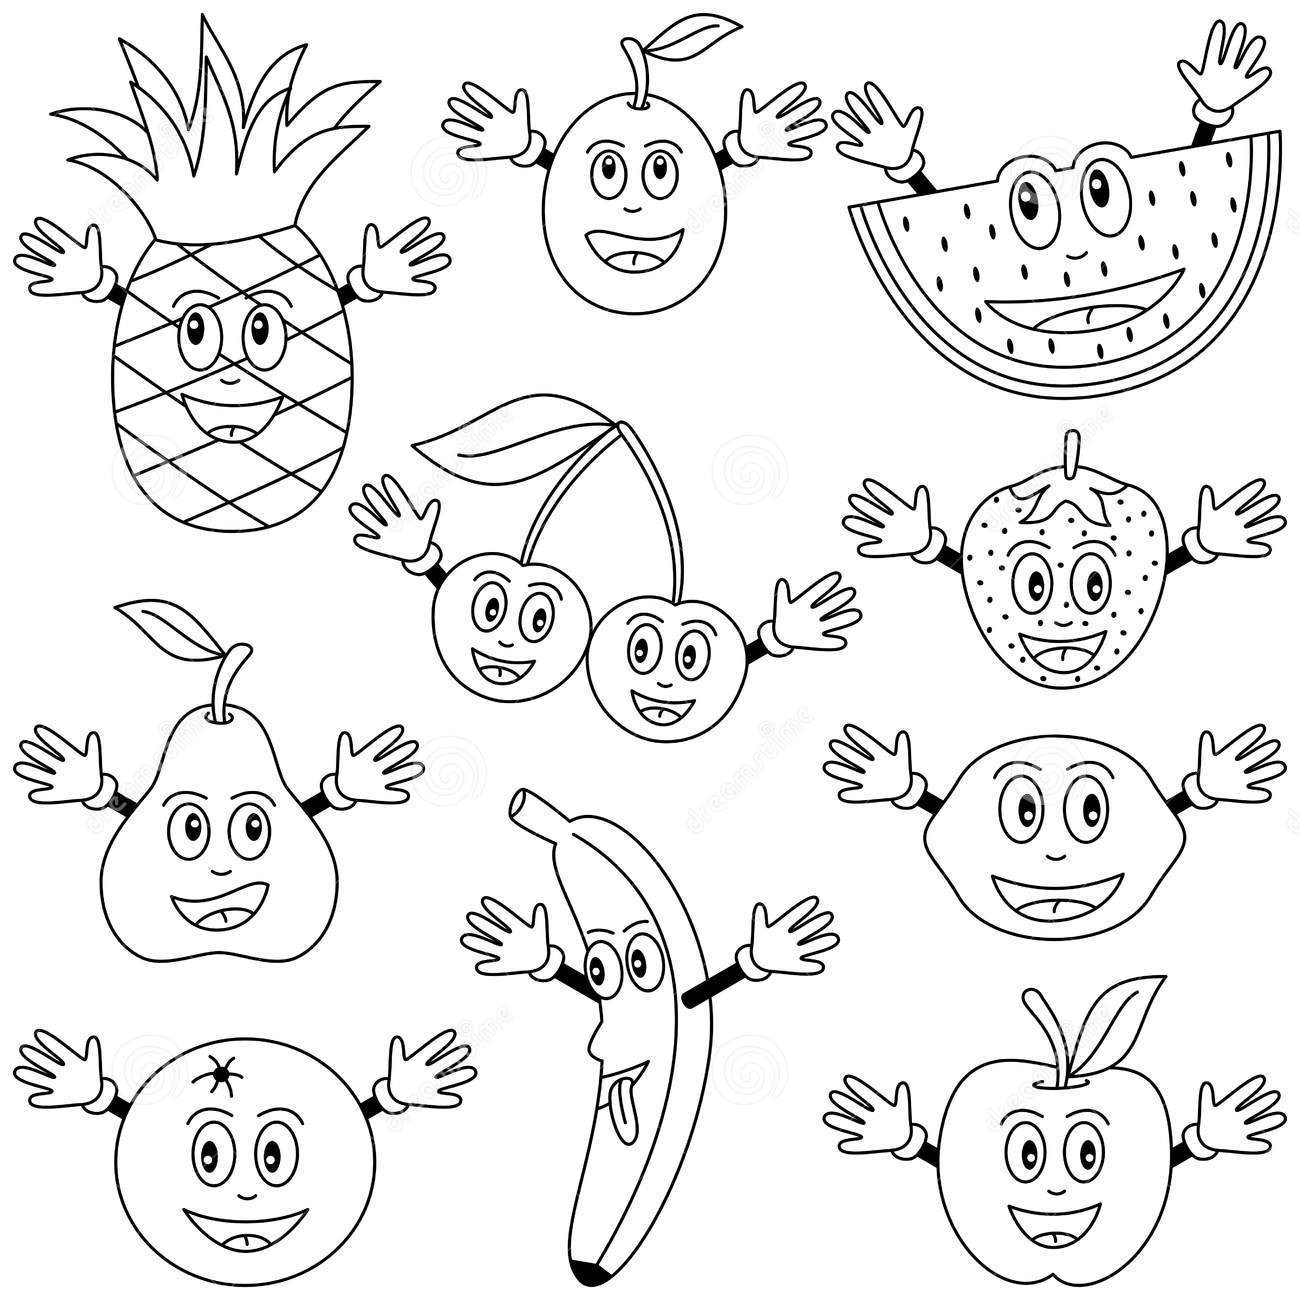 Printable Cartoon Worksheets : Cartoon fruits coloring pages crafts and worksheets for